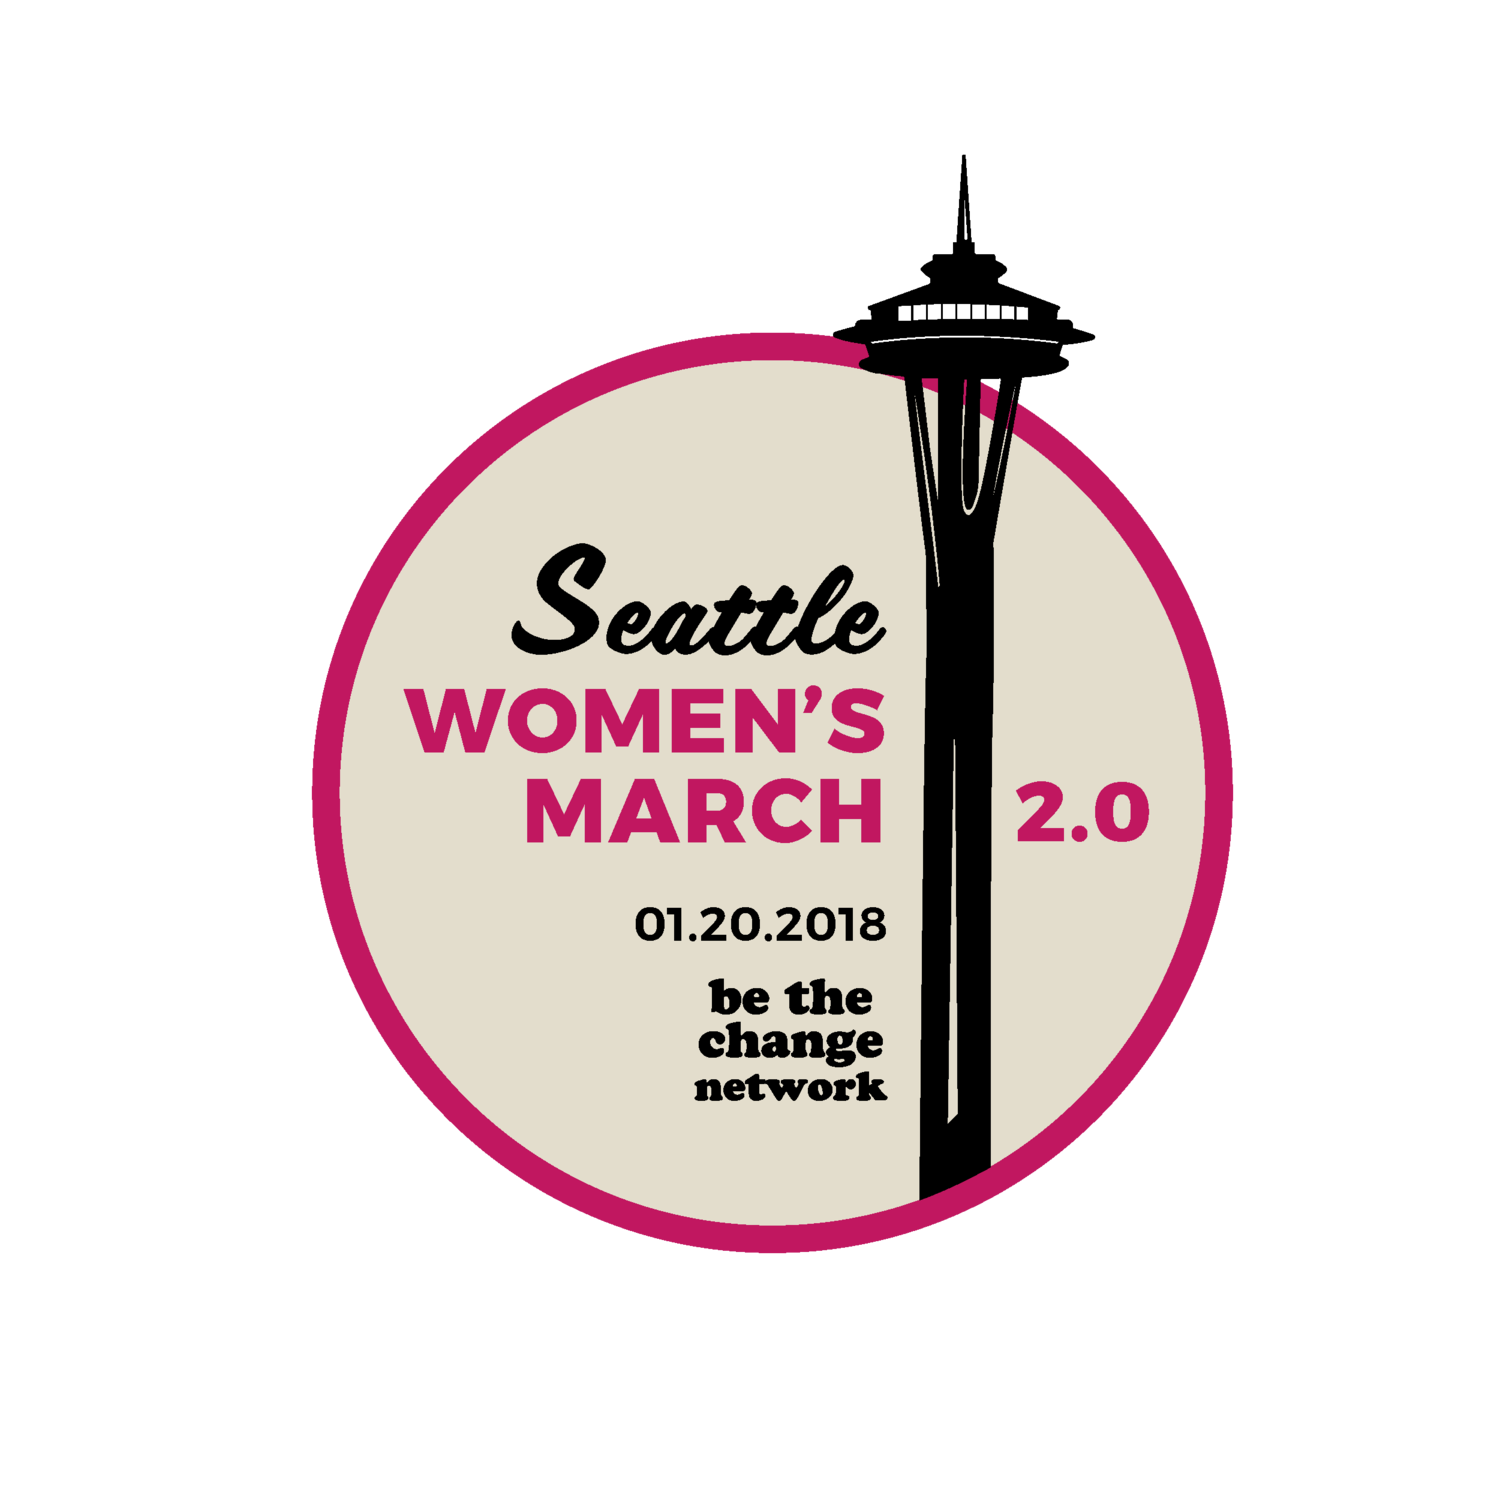 Seattle Women's March 2.0